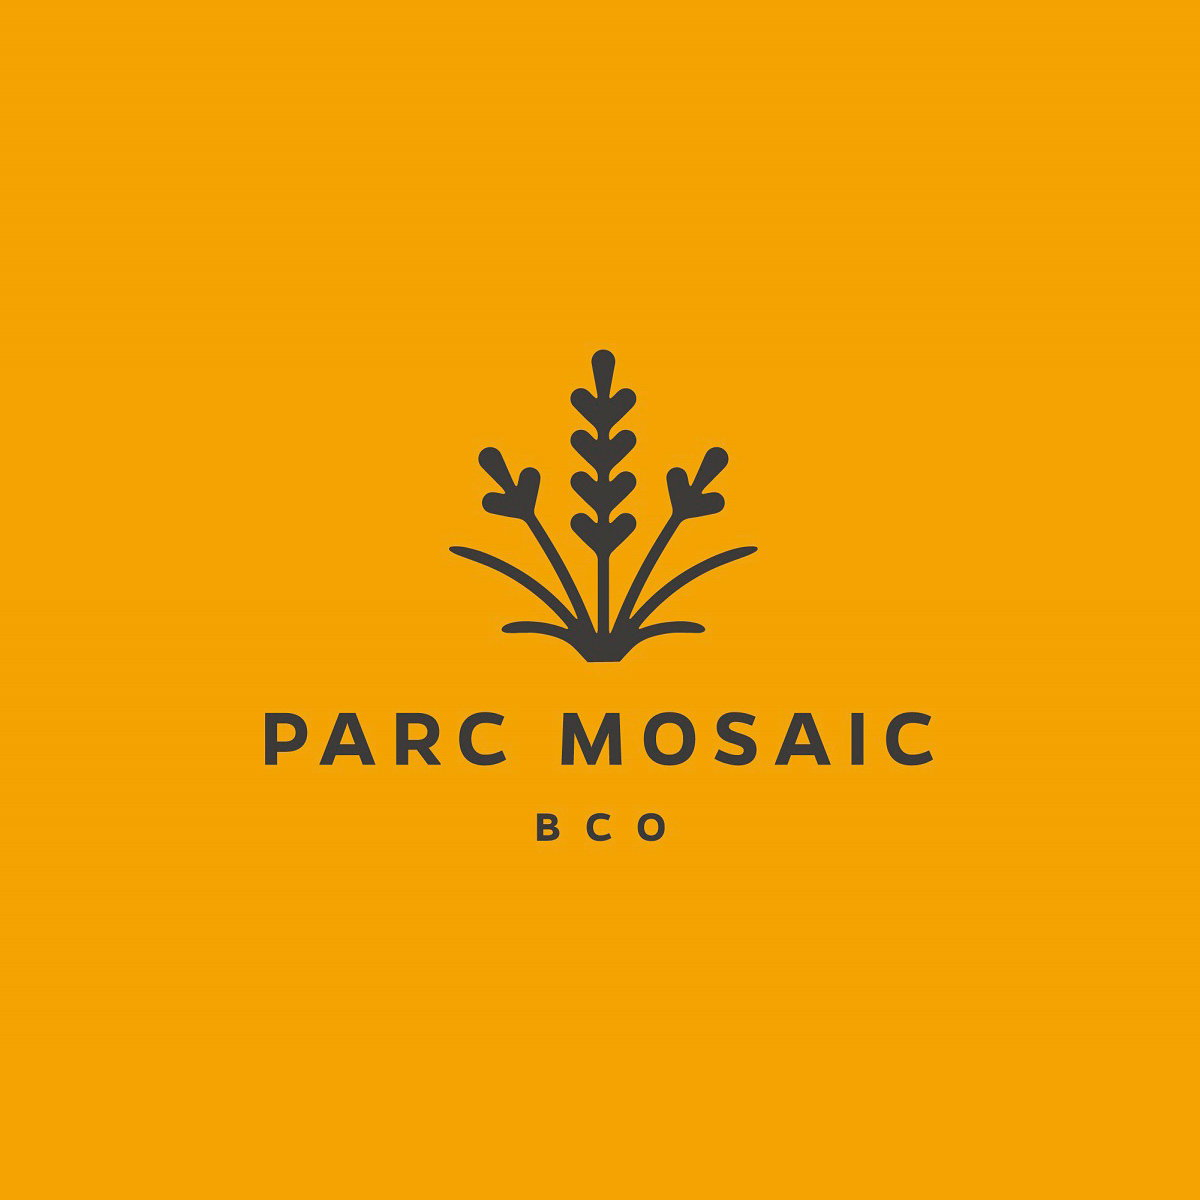 Cactus Designs Branding for Parc Mosaic